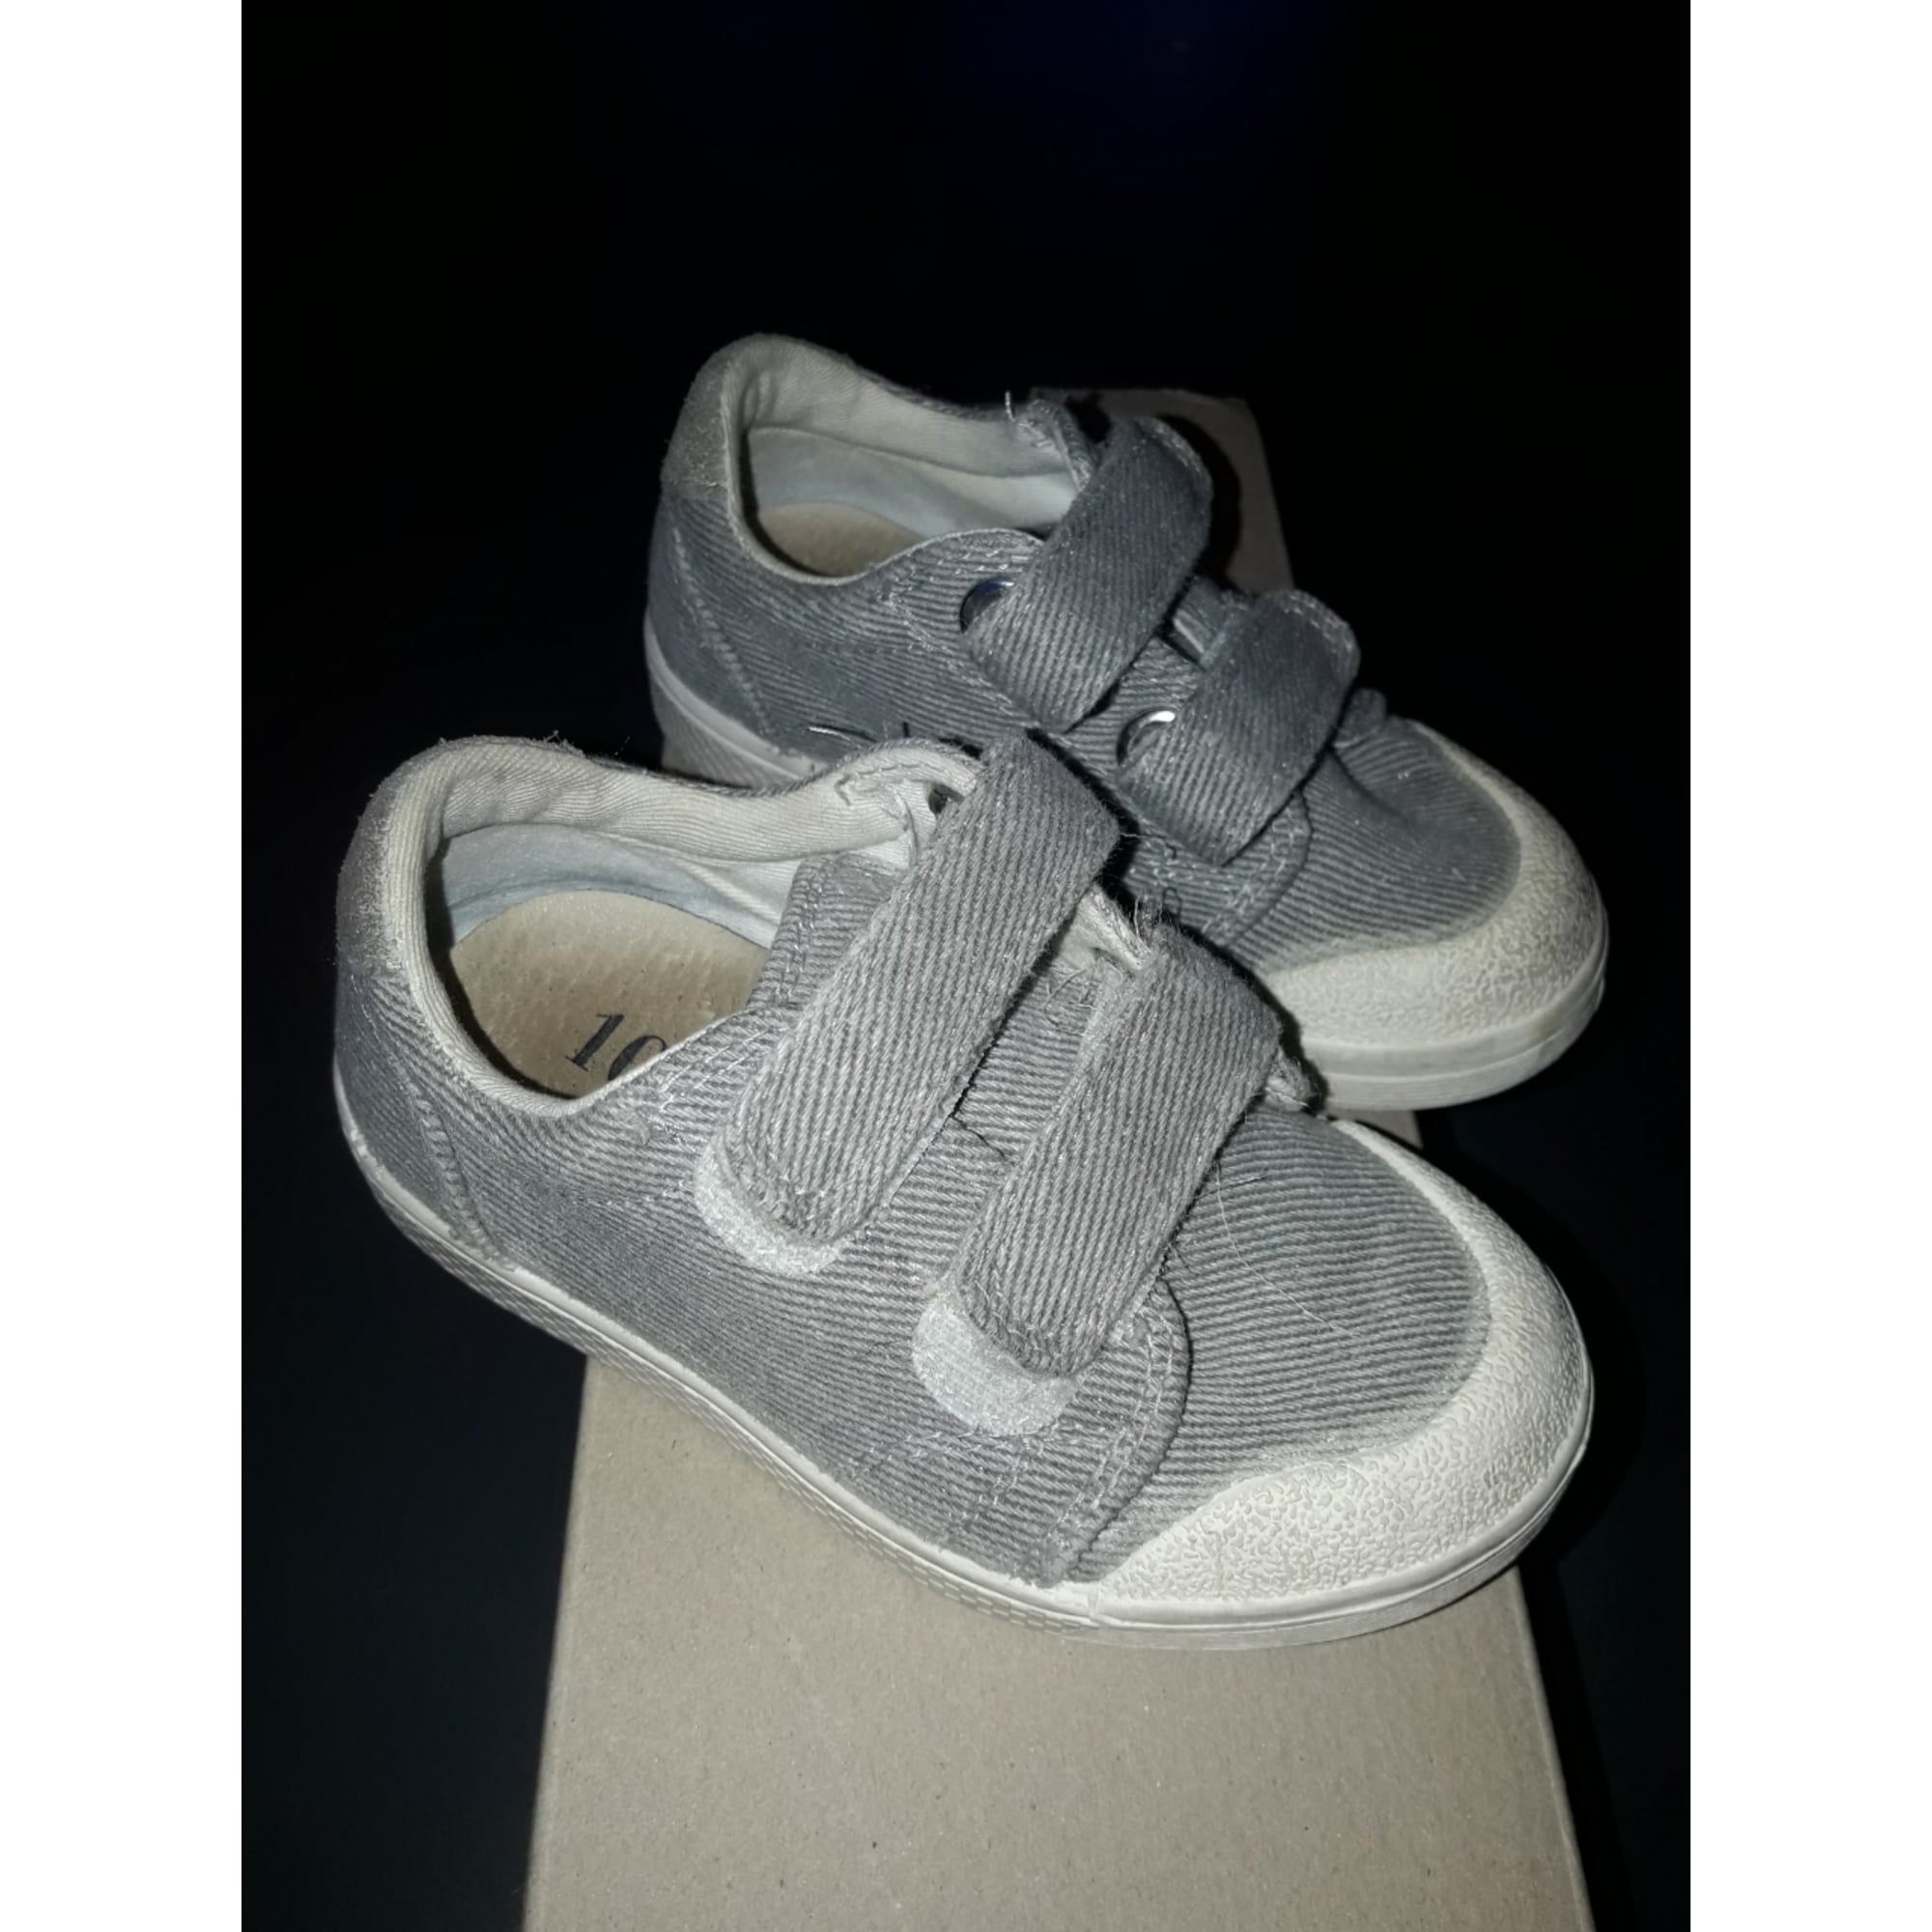 Chaussures à scratch 10 IS Gris, anthracite